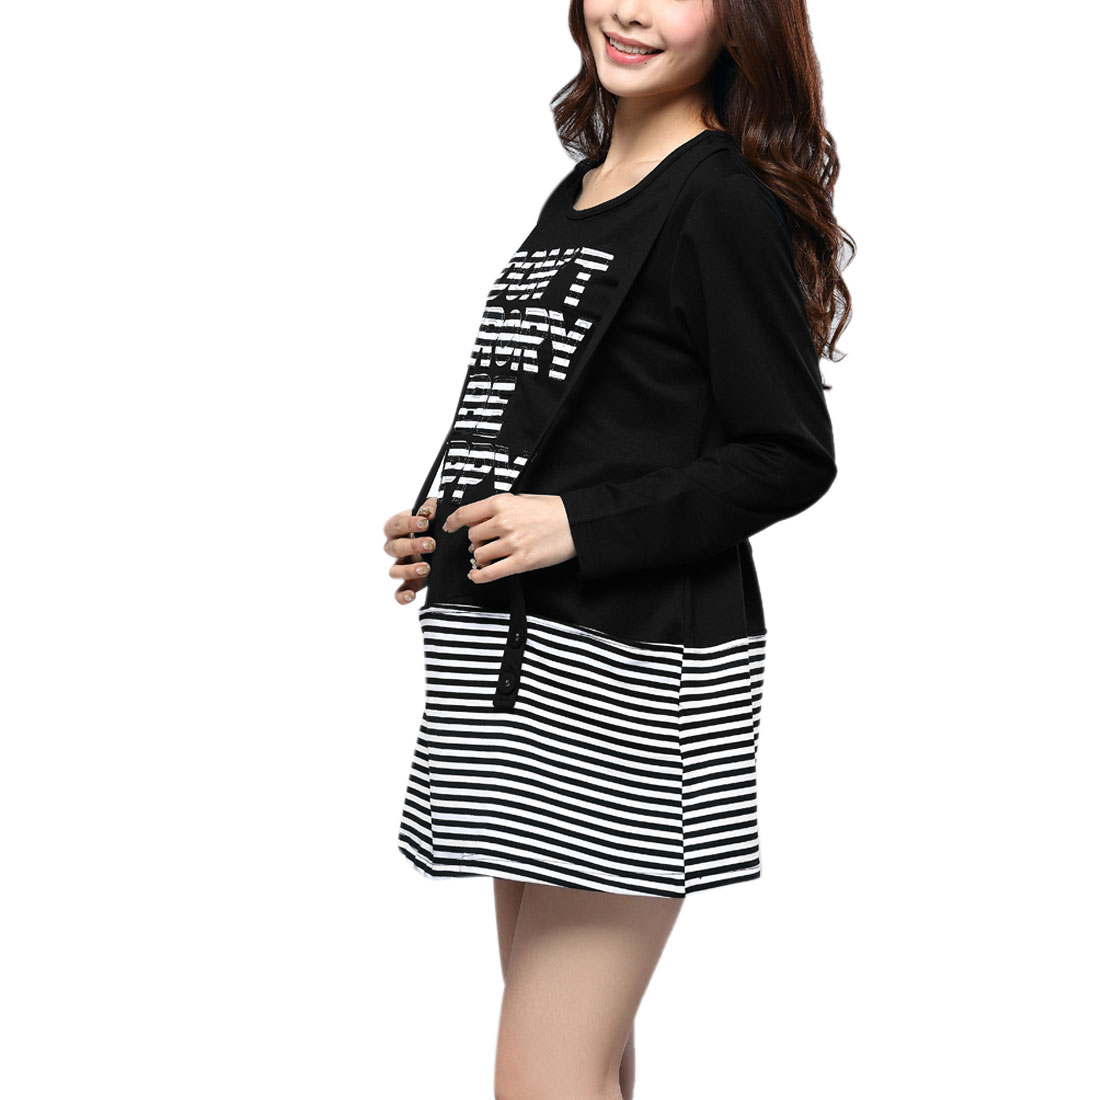 Matherhood Pullover Long Sleeve Stripes Letters Dress Black White S